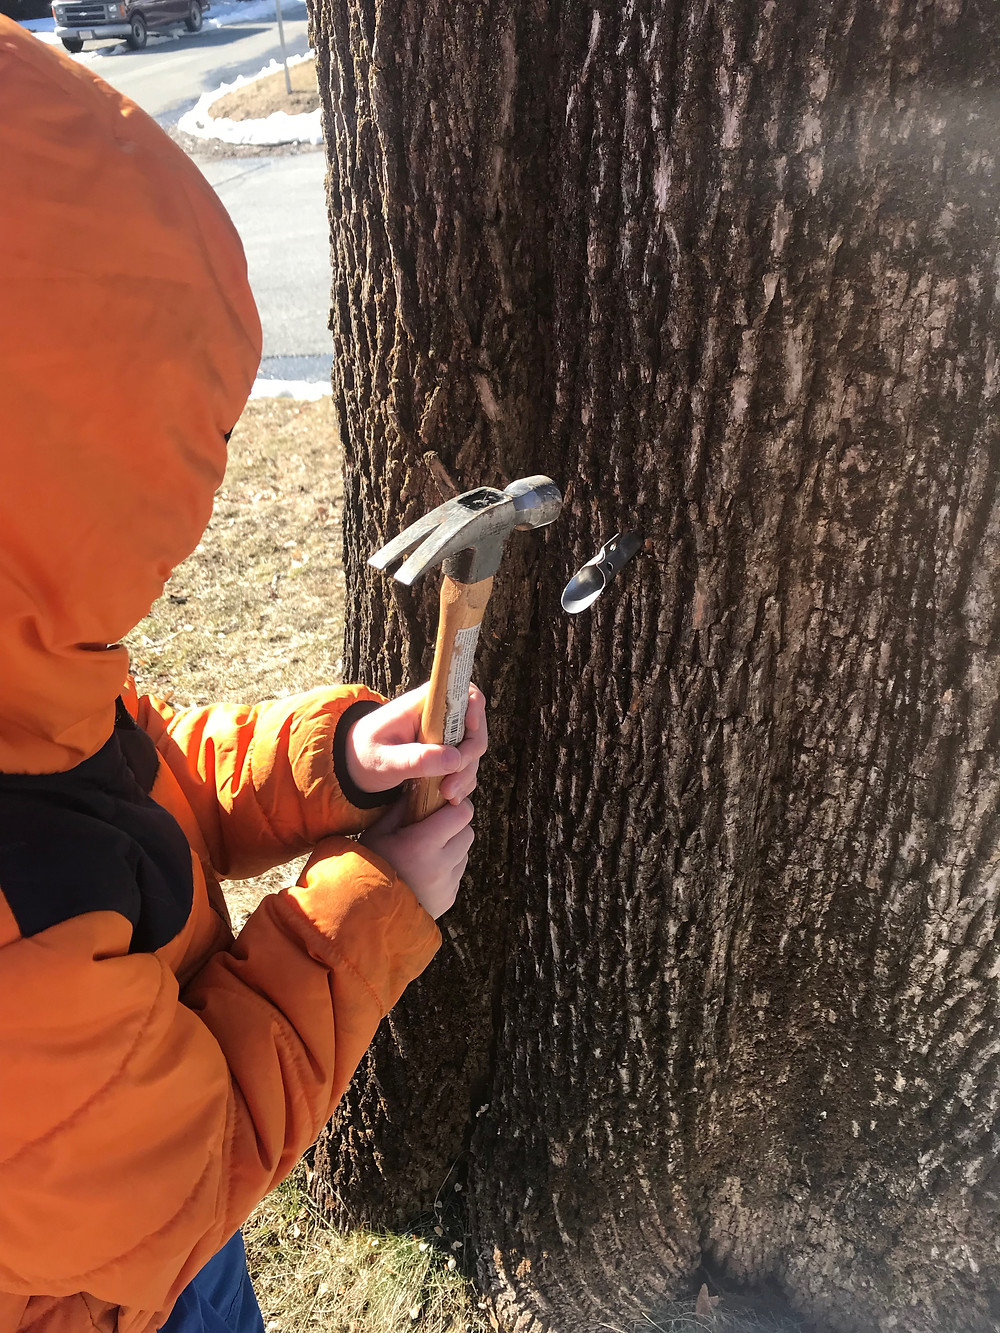 A small child, dressed in an orange winter coat, hammers a metal maple tap into a large maple tree